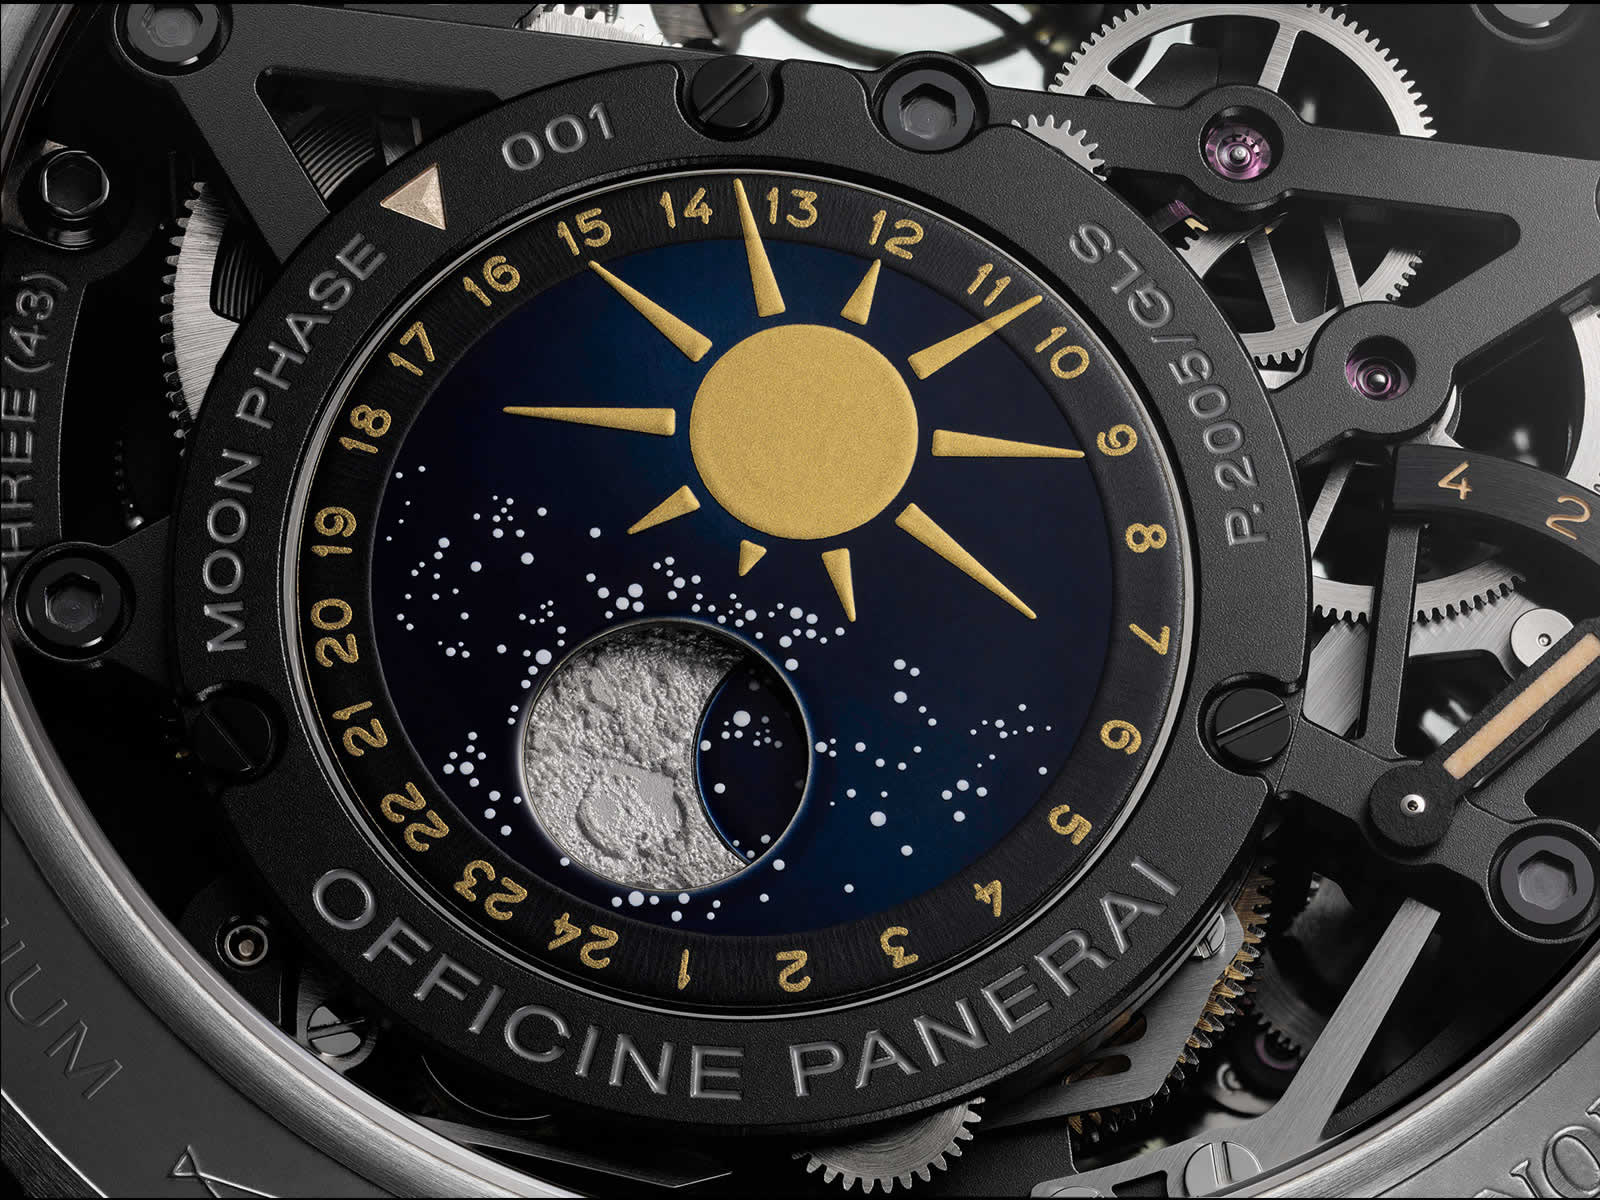 Panerai-L-Astronomo-Luminor-1950-Tourbillon-Moon-Phases-Equation-of-Time-Gmt-Pam00920-7.jpg